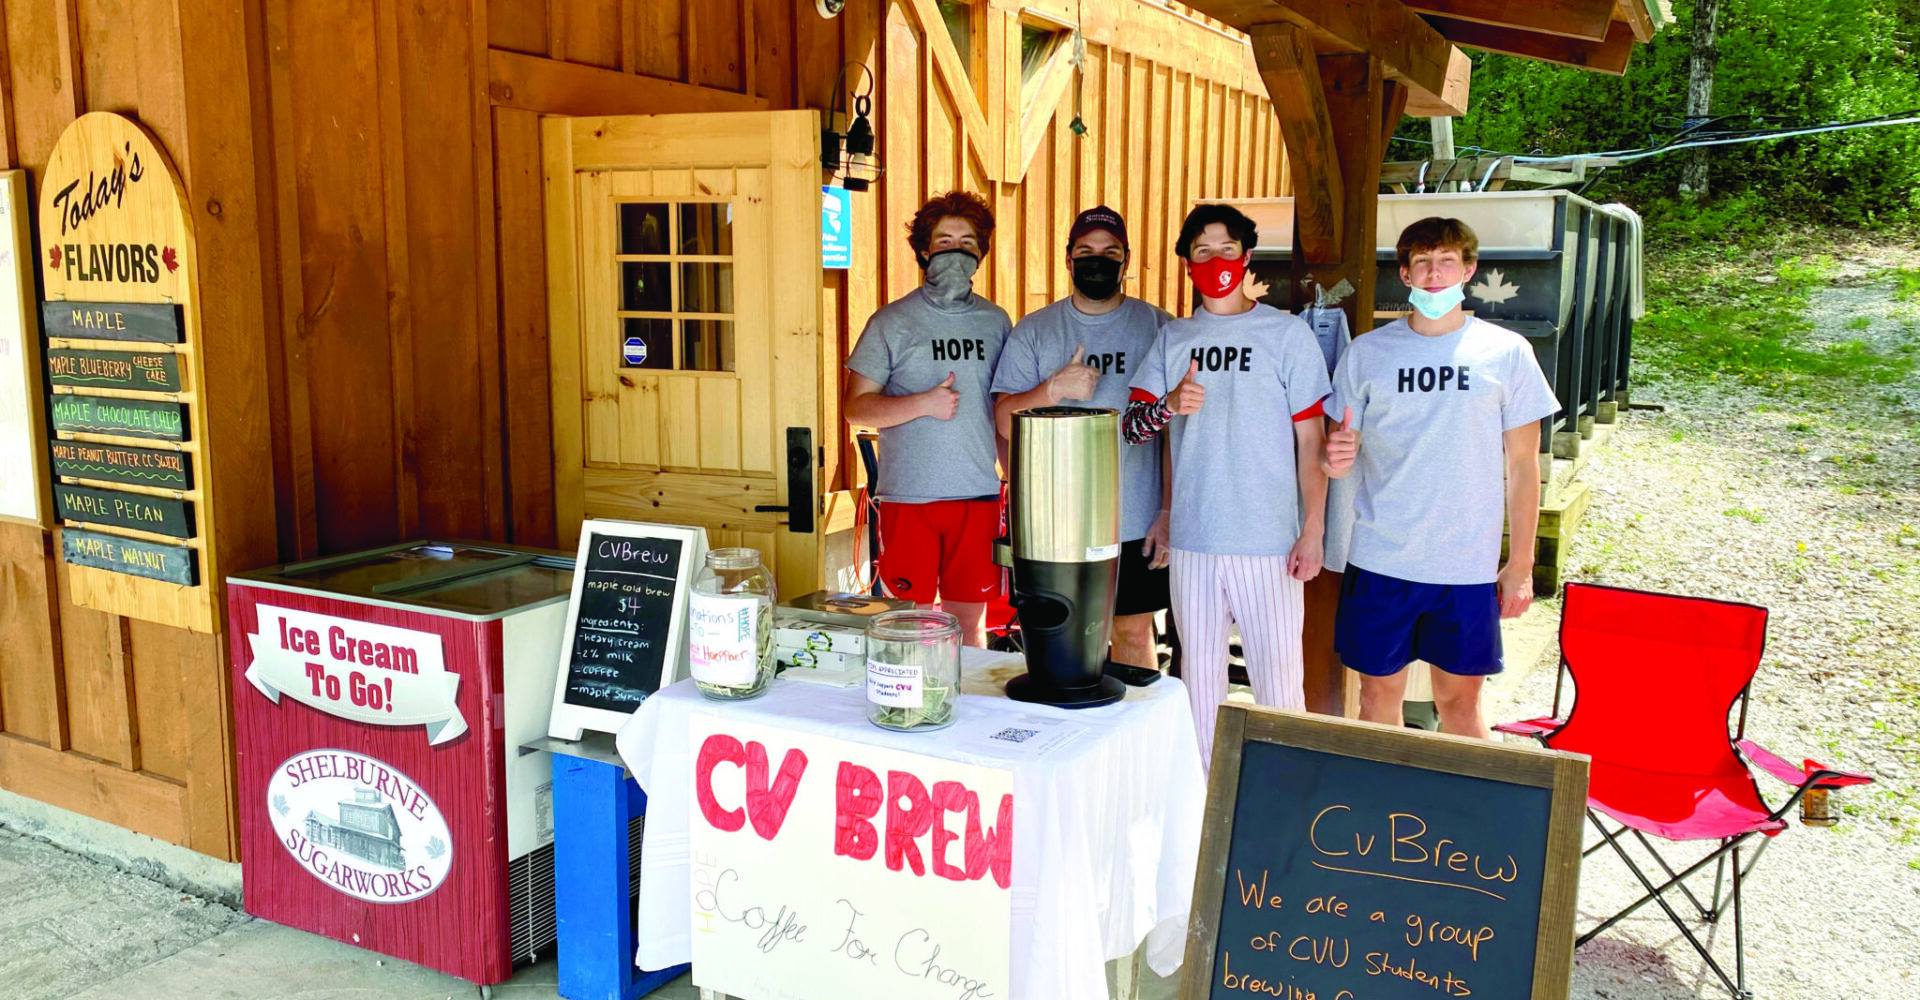 The students of CVBrew brought a business into reality this spring as a fundraiser for Project Hoeppner.